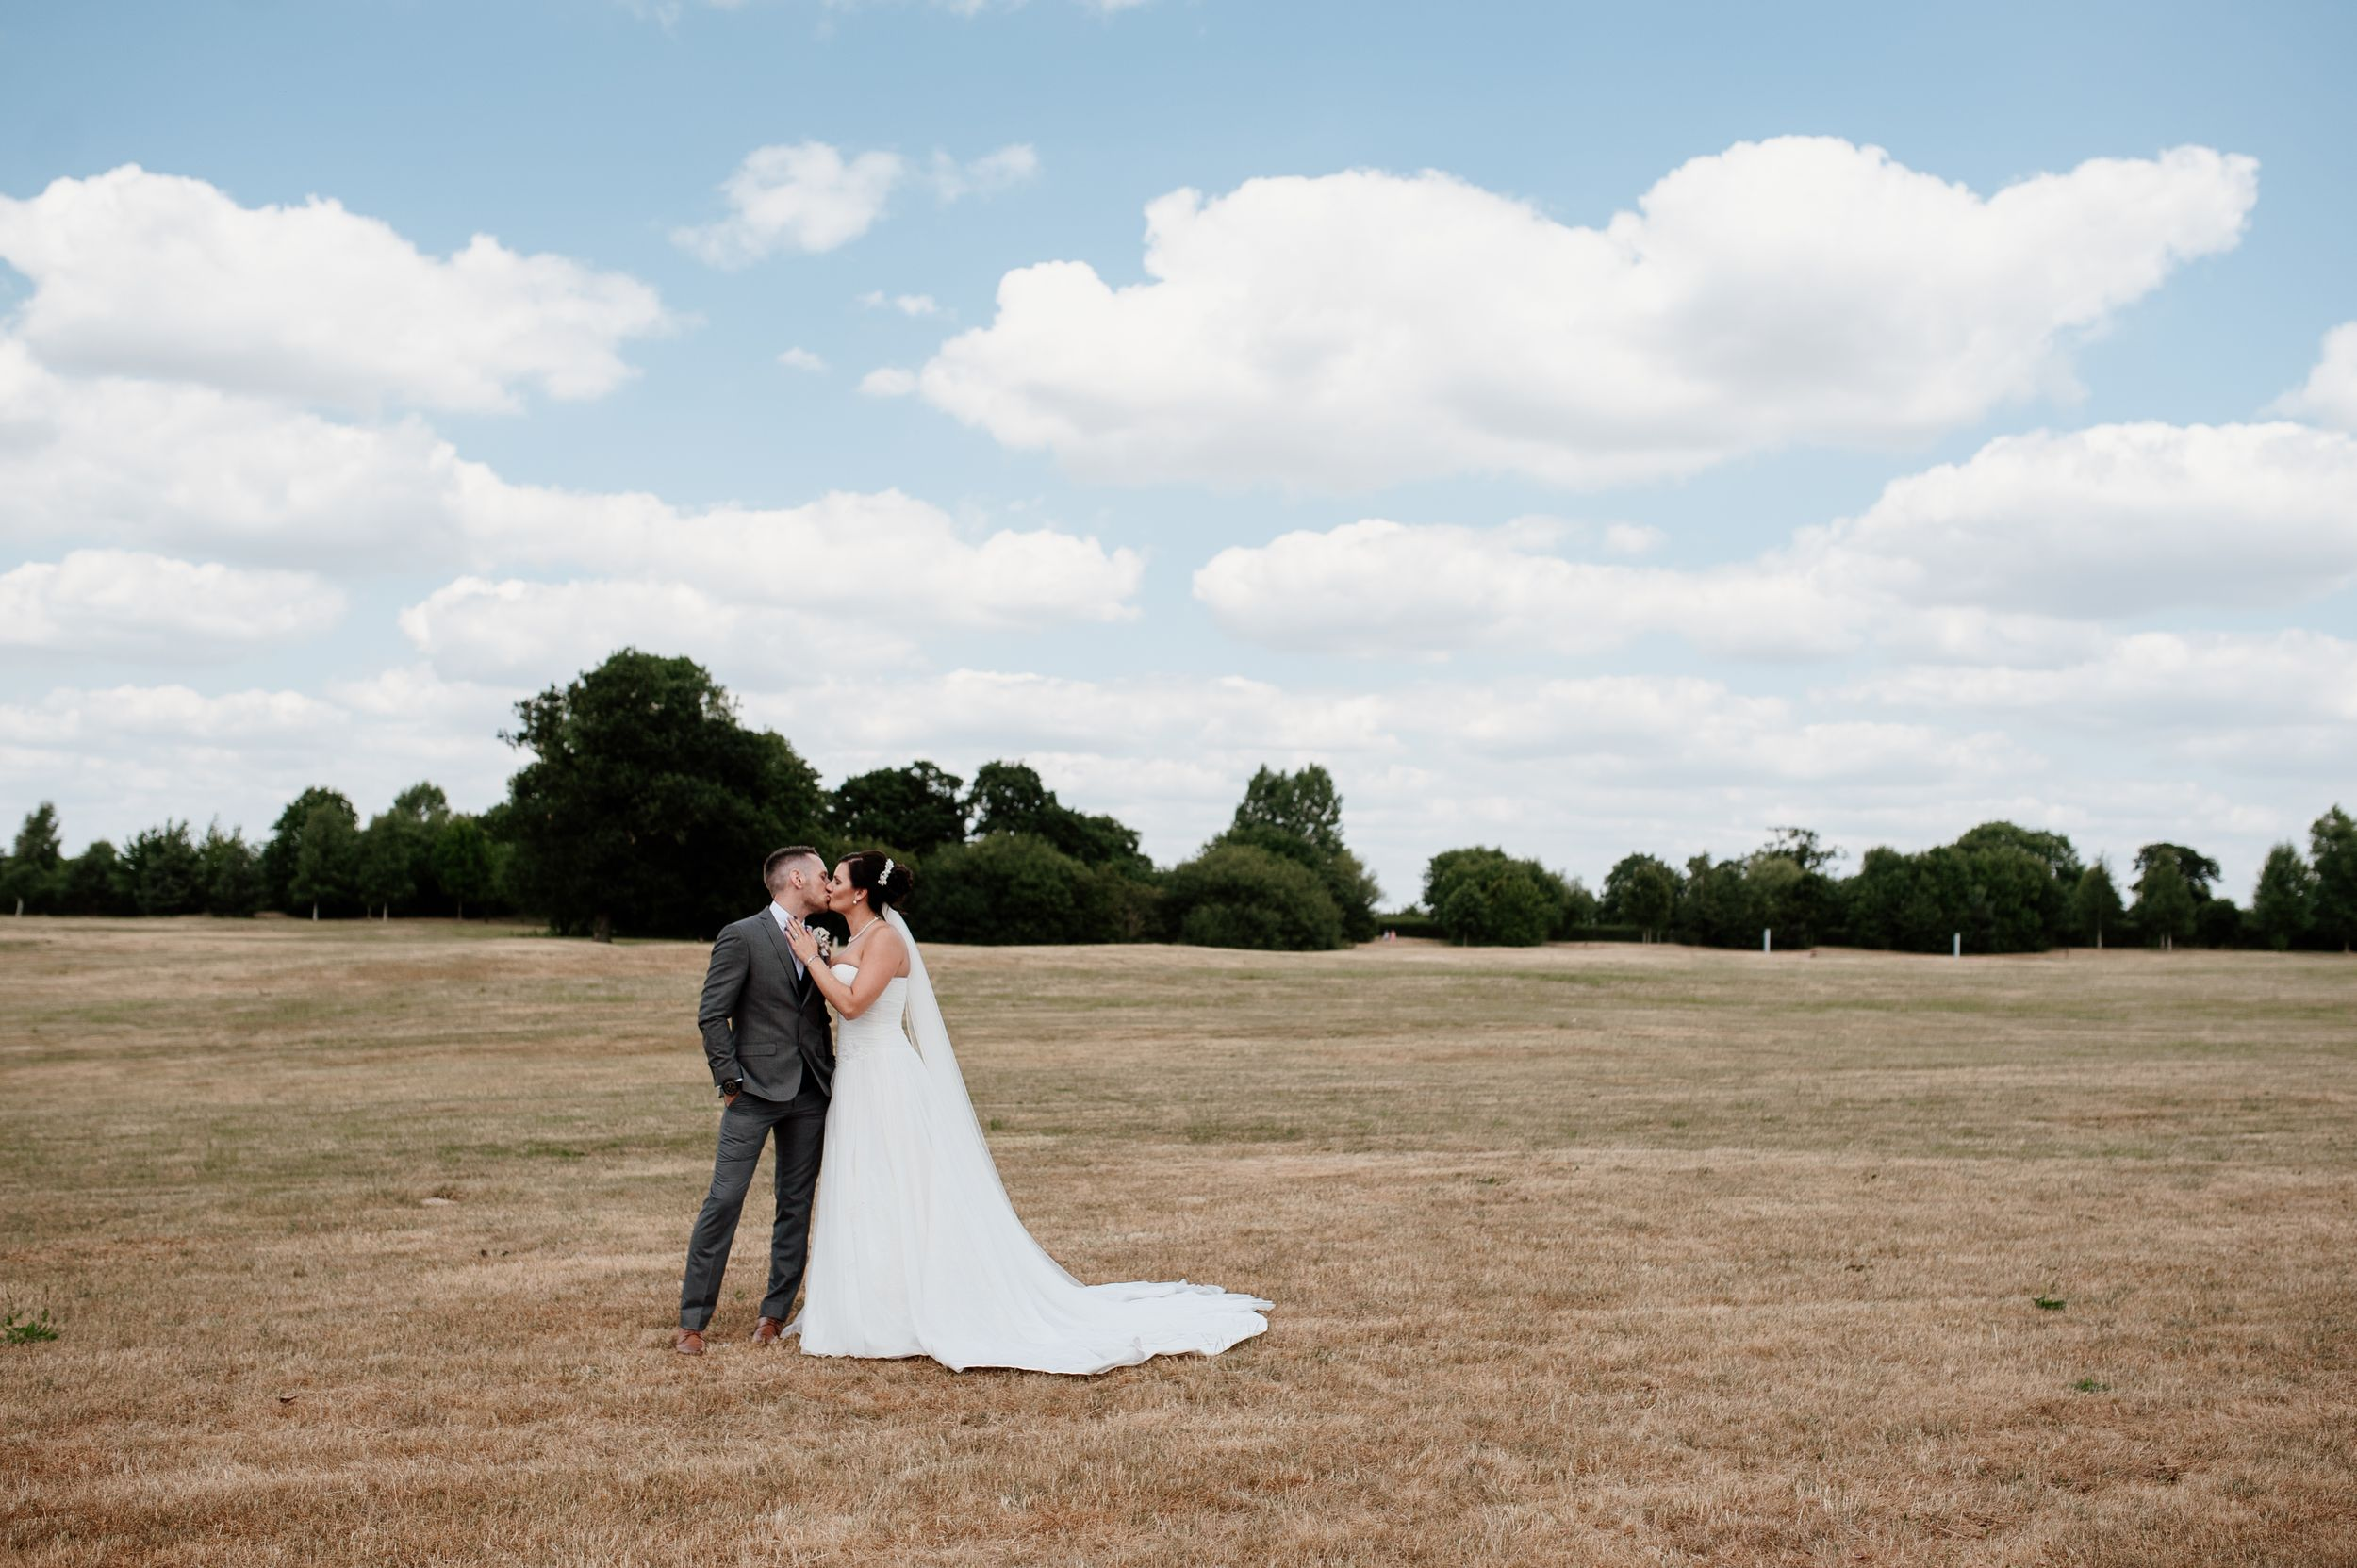 wychwood park wedding venue